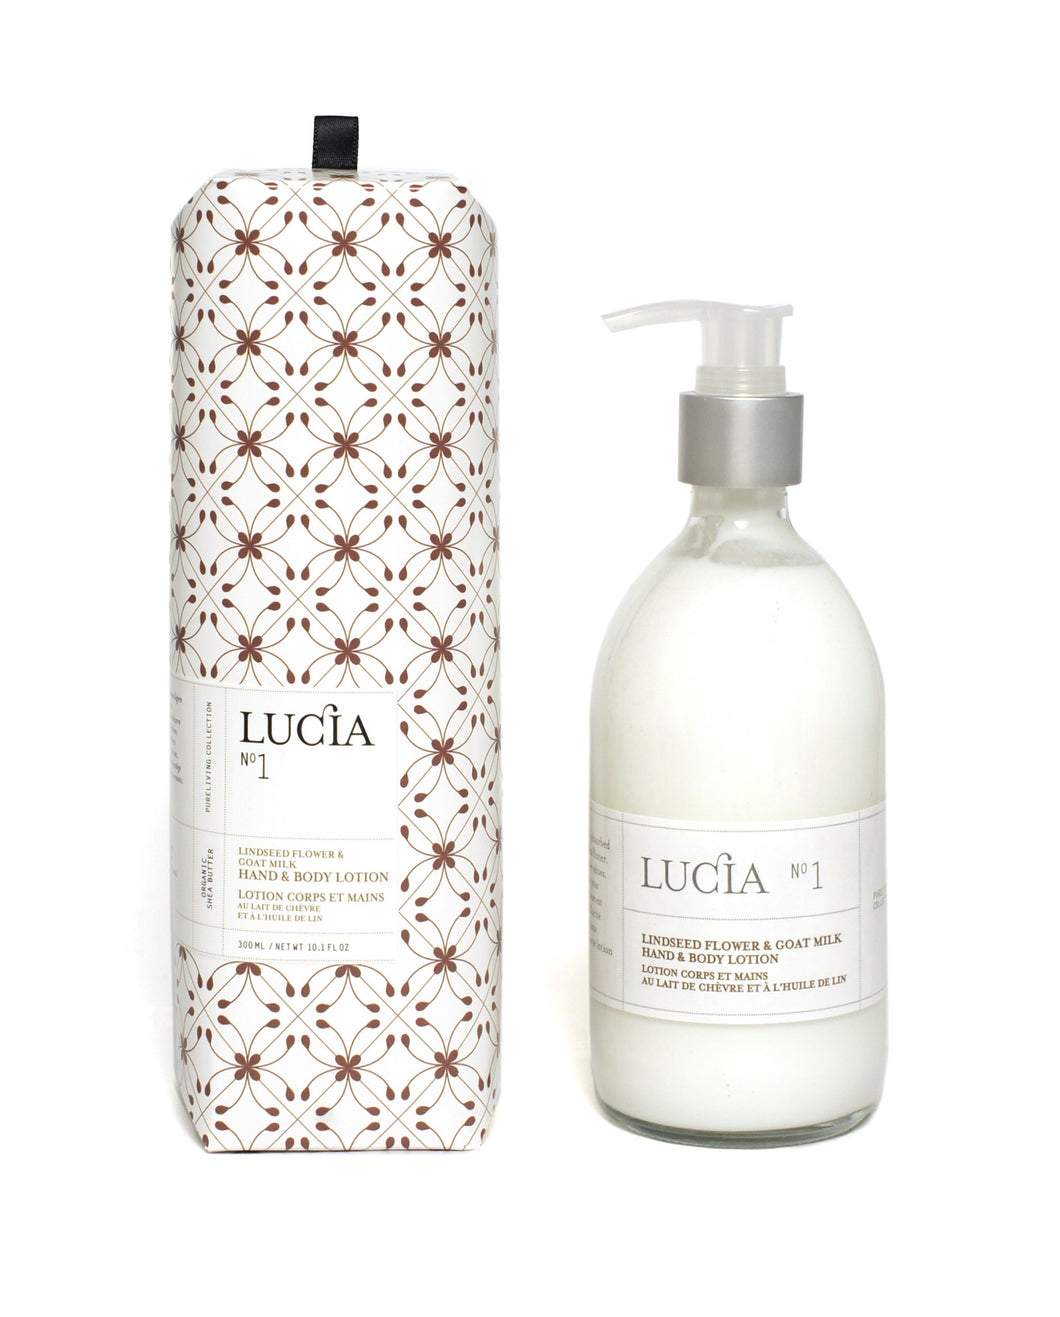 N°1 Goat Milk & Lindseed Flower Hand Lotion